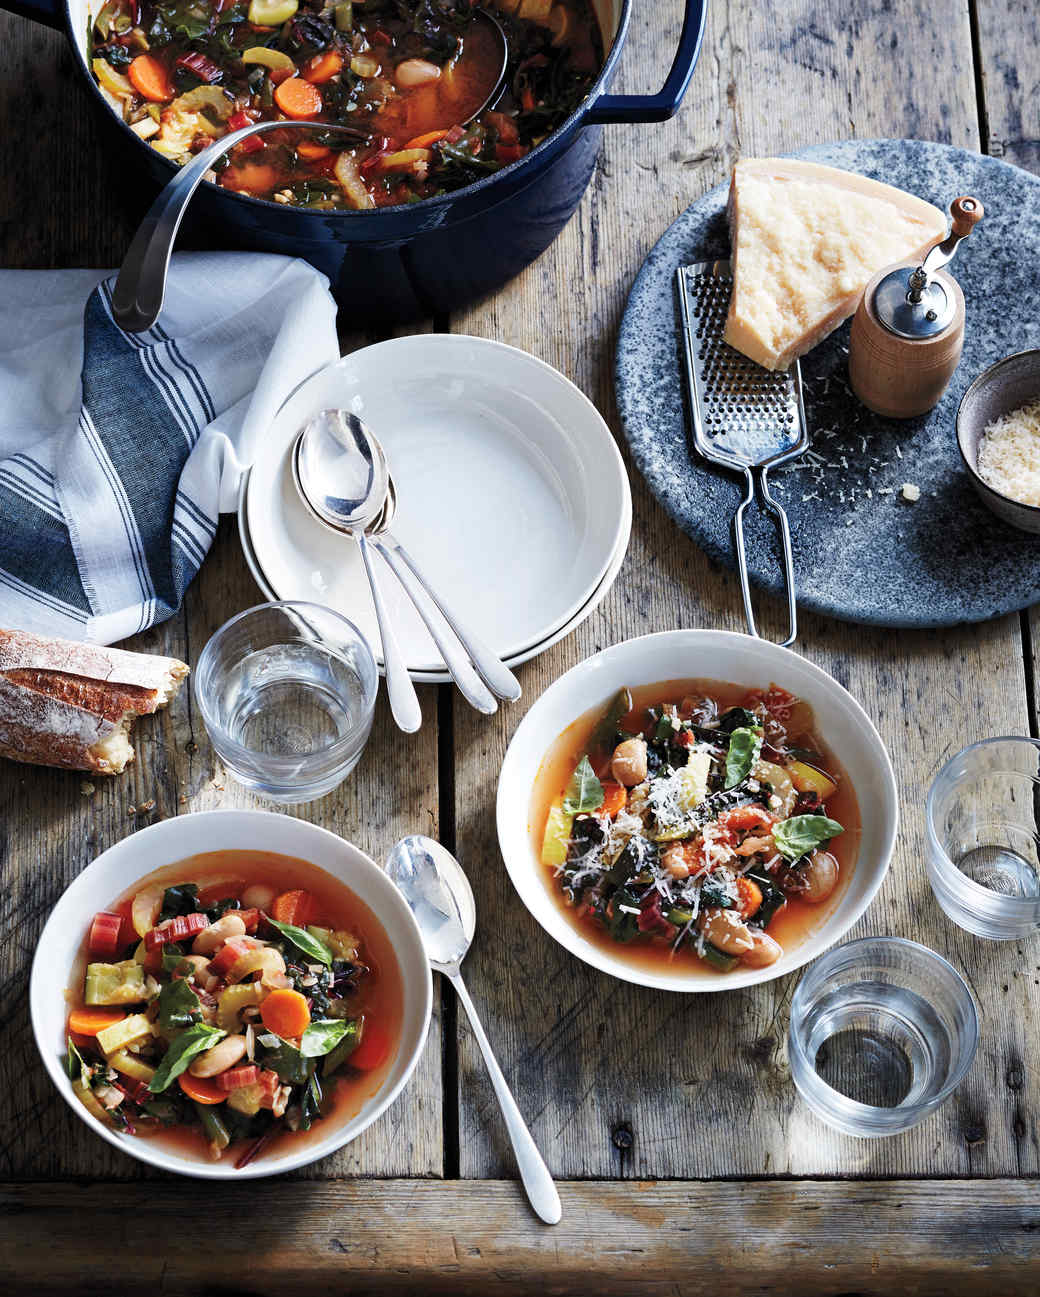 opener-minestrone-soup-v7-063-selects-d112174.jpg